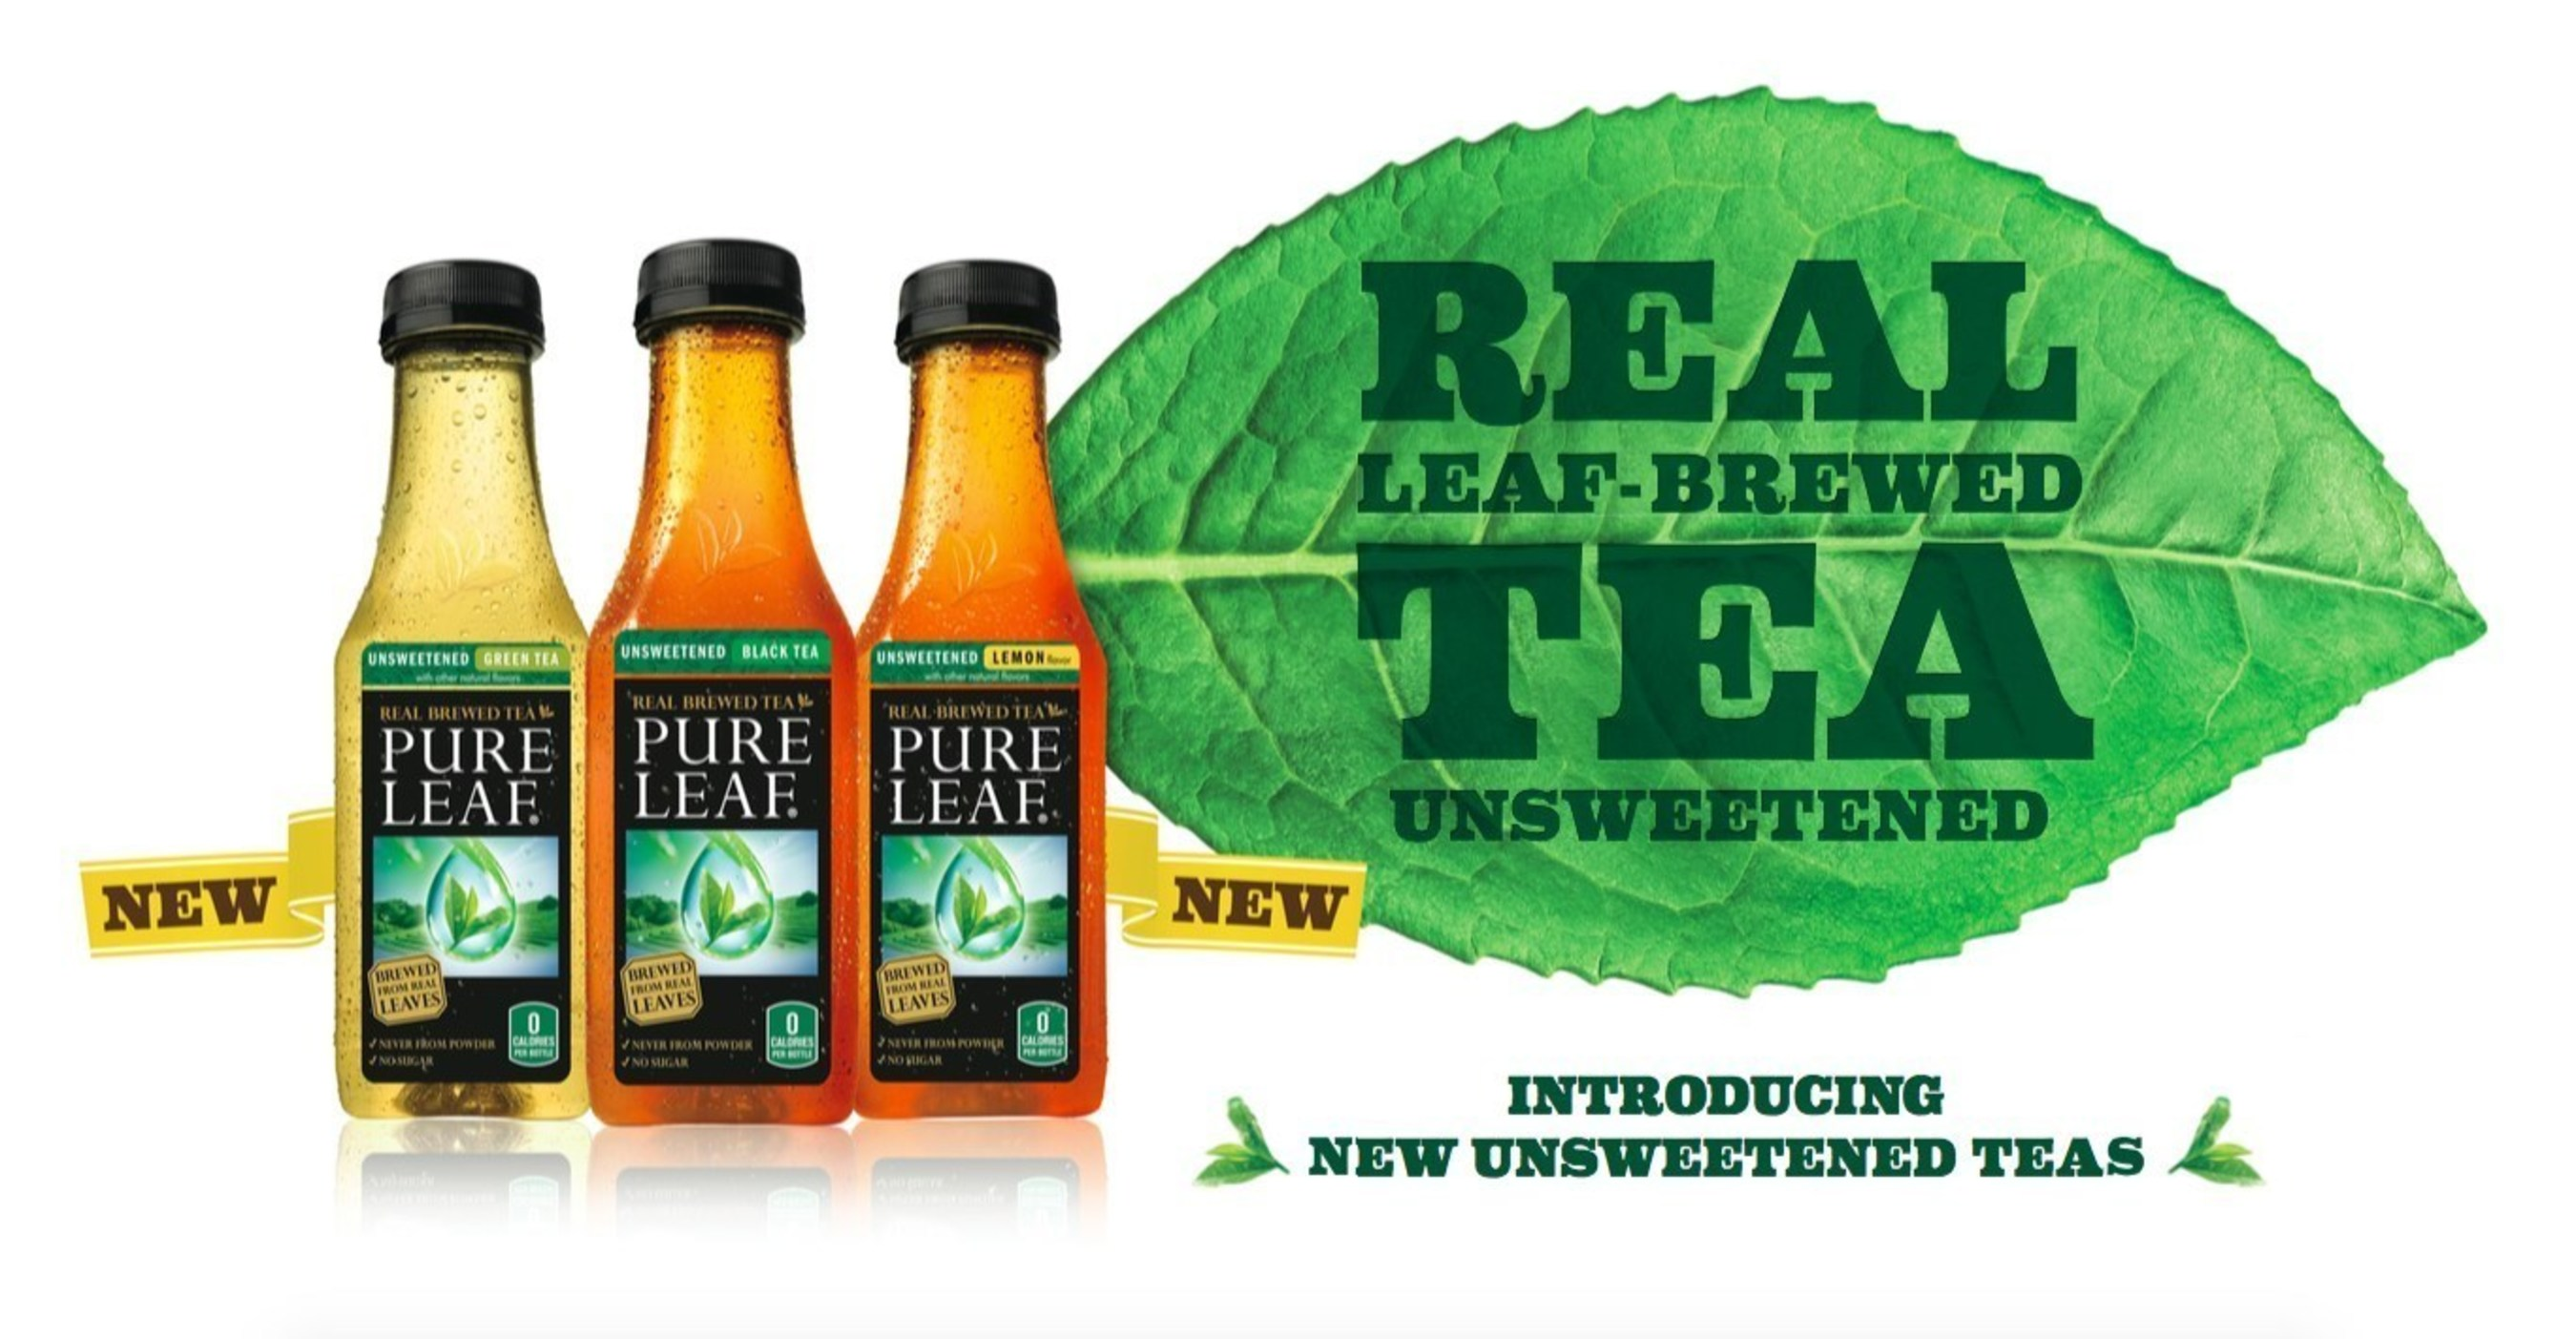 Introducing New Pure Leaf Unsweetened Teas, a premium iced tea brewed from real tea leaves.